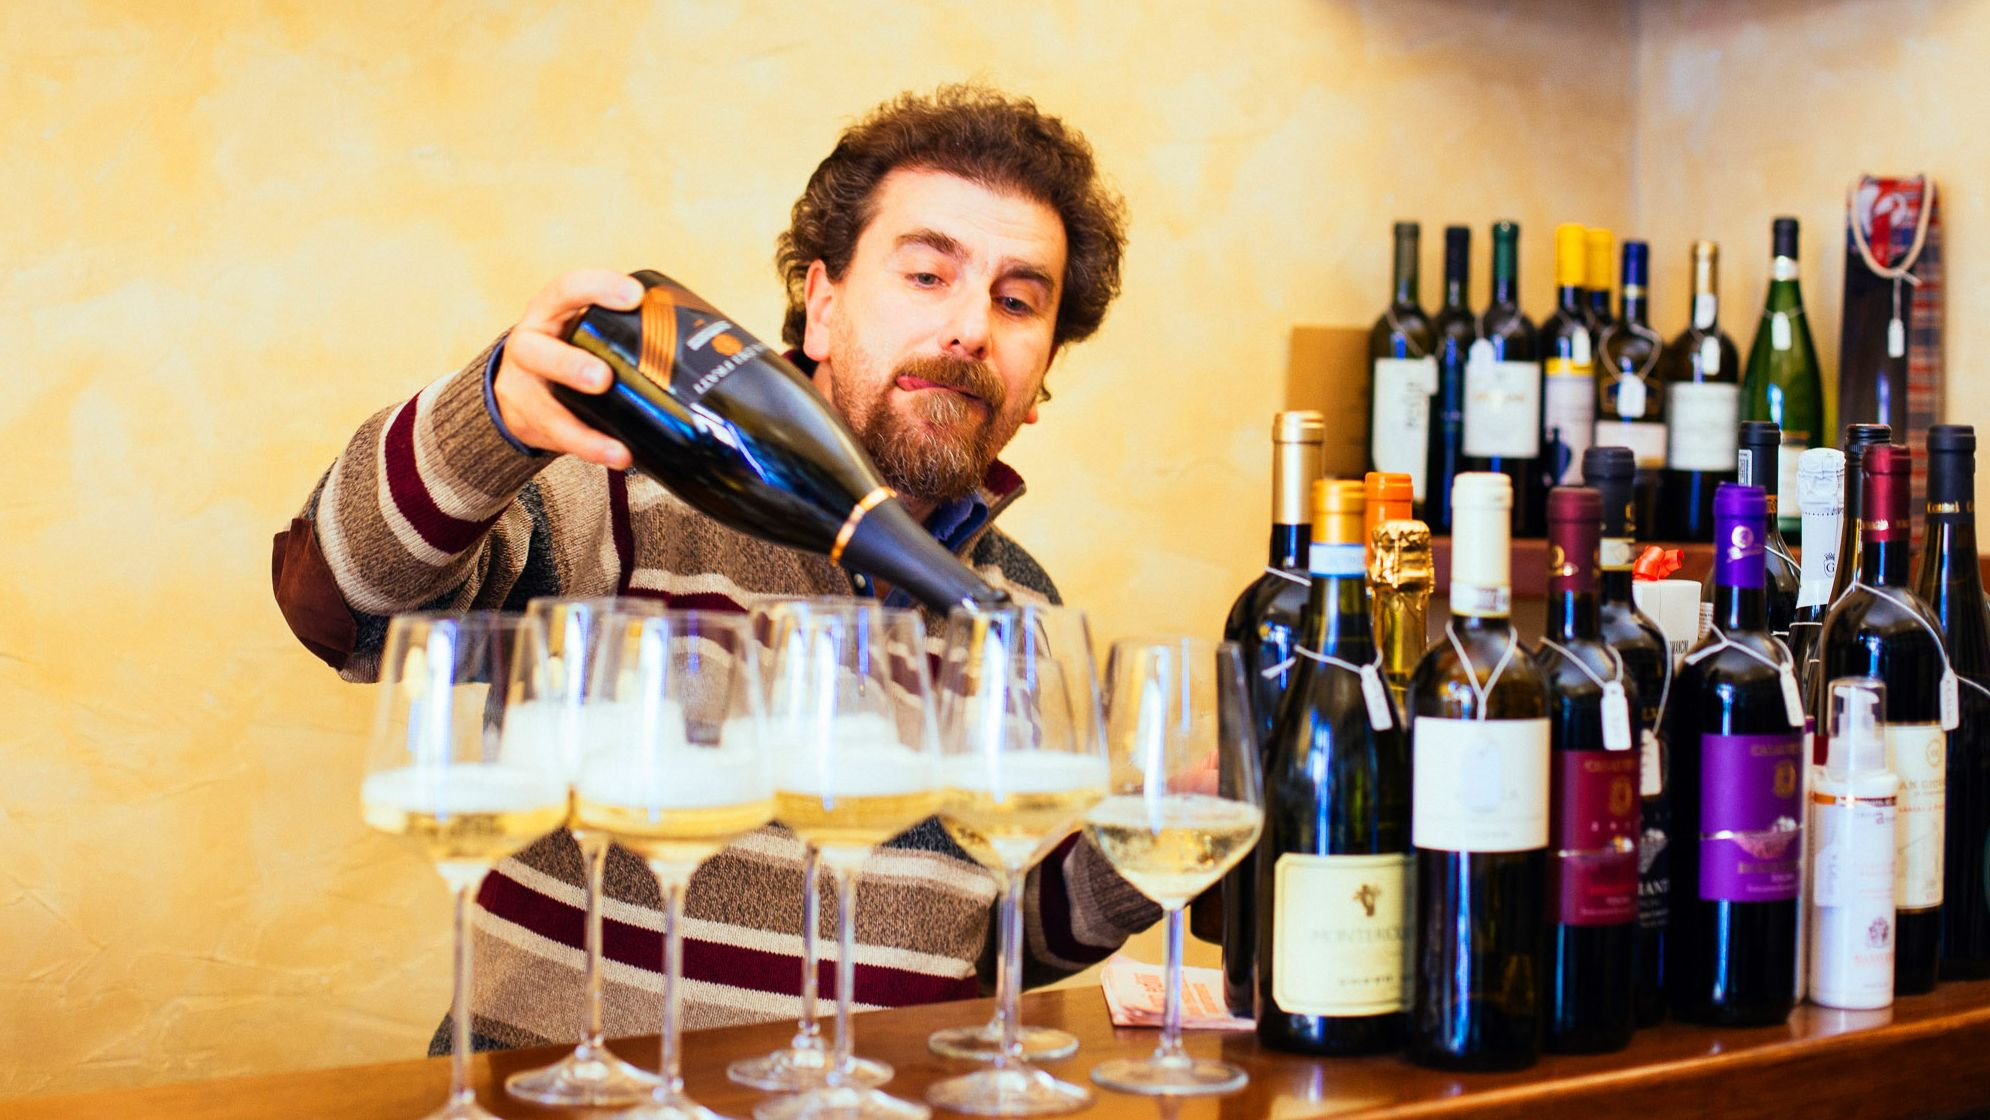 Wine Sommelier pouring Prosecco in glasses